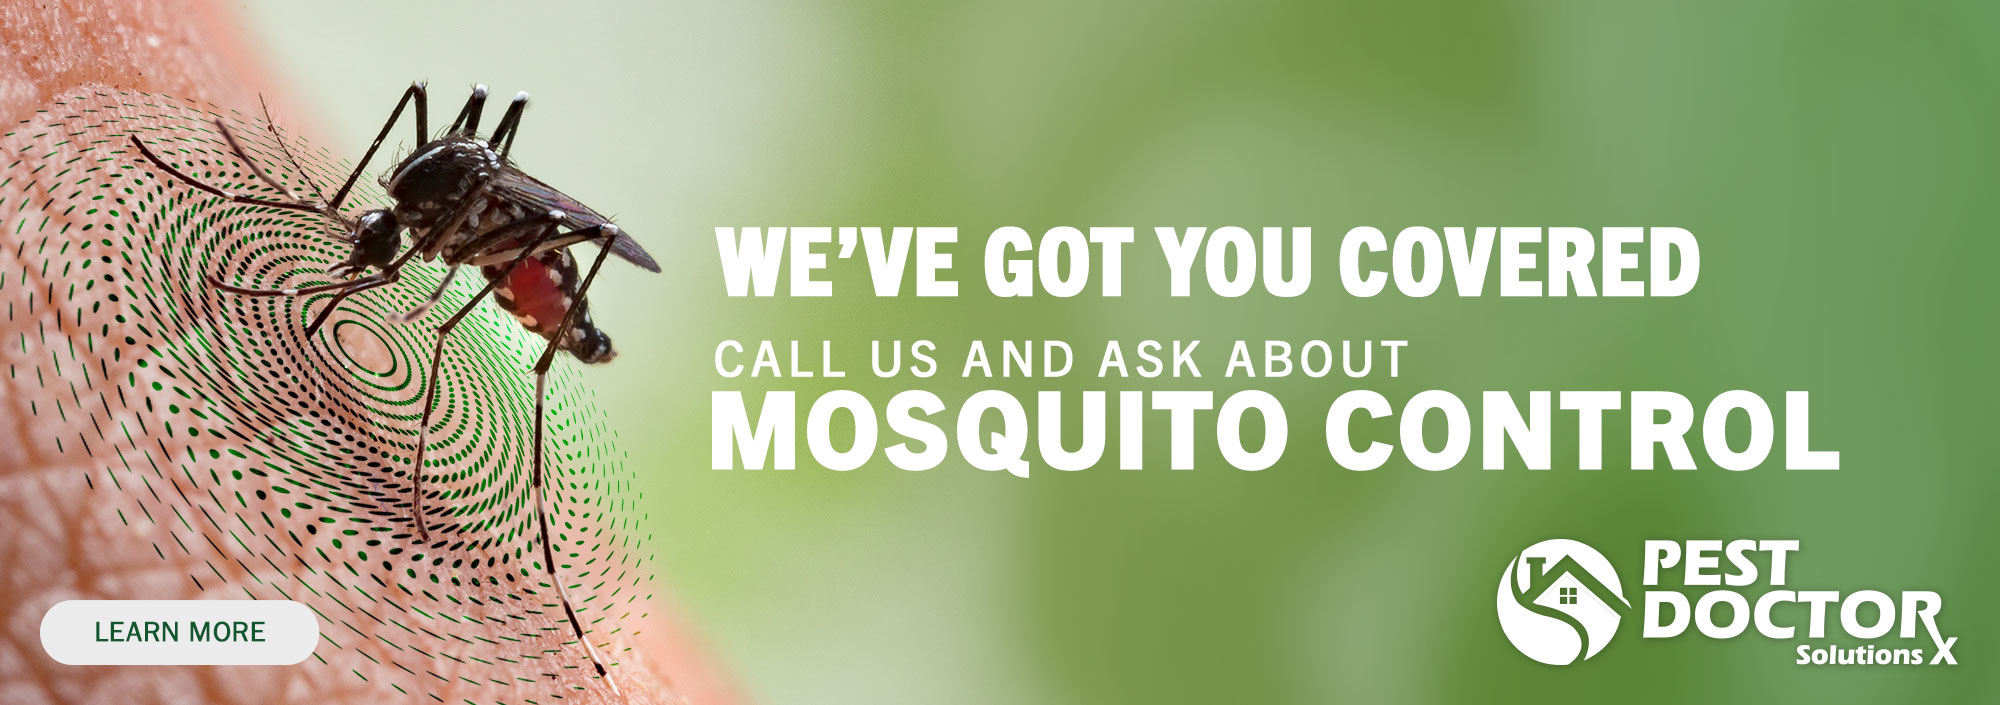 We've got you coverd - mosquito control